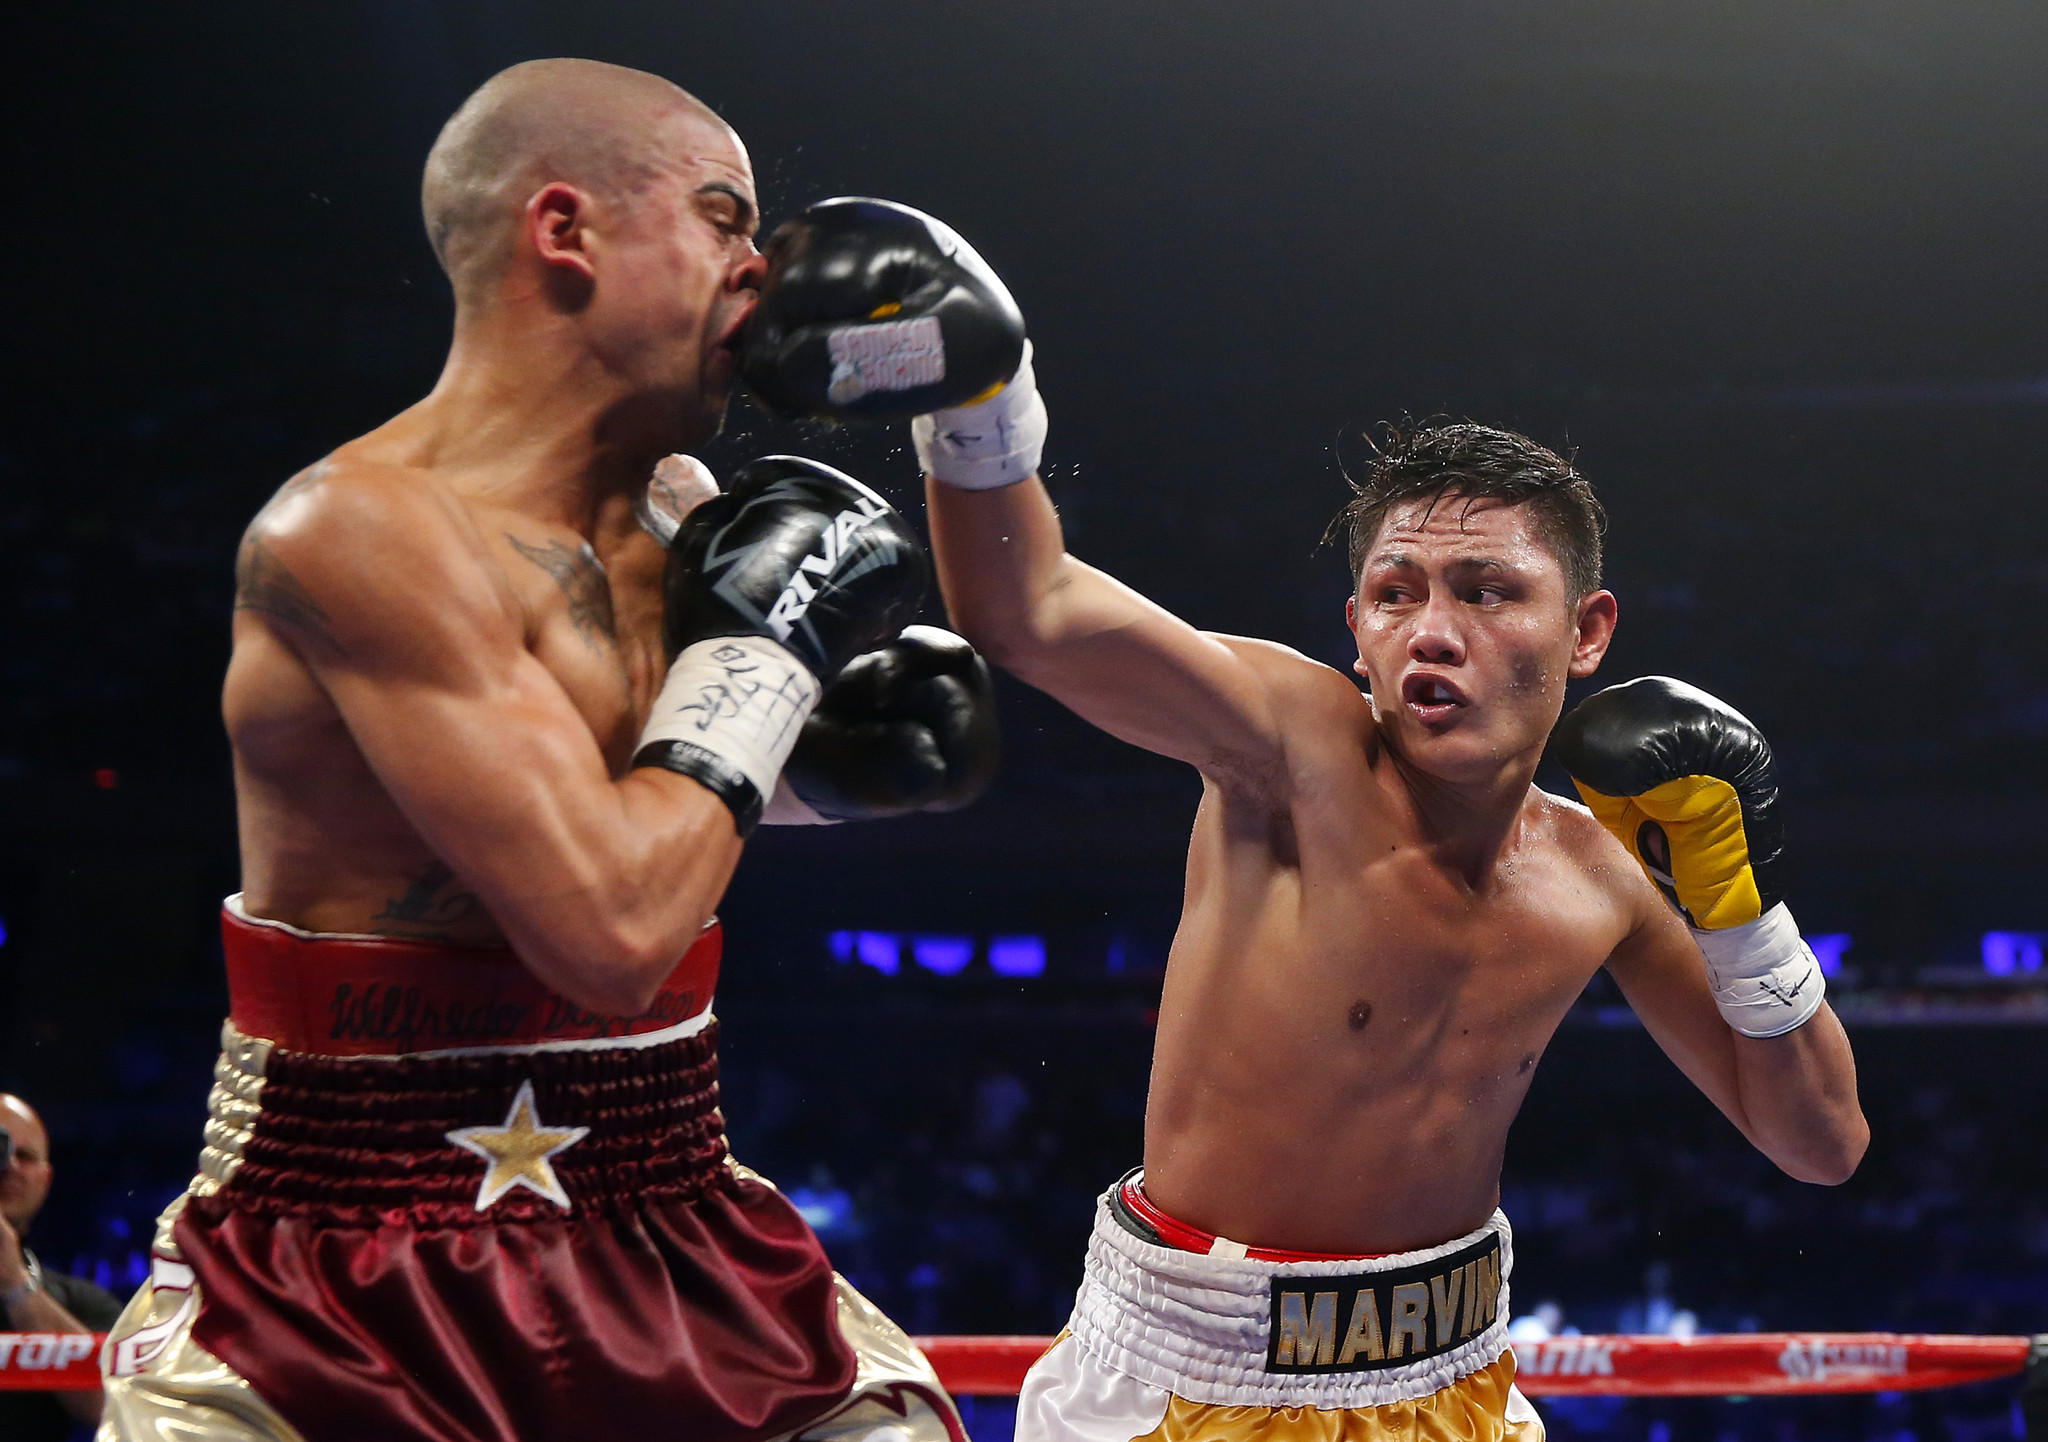 Marvin Sonsona of the Philippines lands a right punch to the face of Wilfredo Vazquez Jr. of Puerto Rico during the seventh round of their NABF Featherweight title fight on June 7, 2014 at Madison Square Garden in New York City.